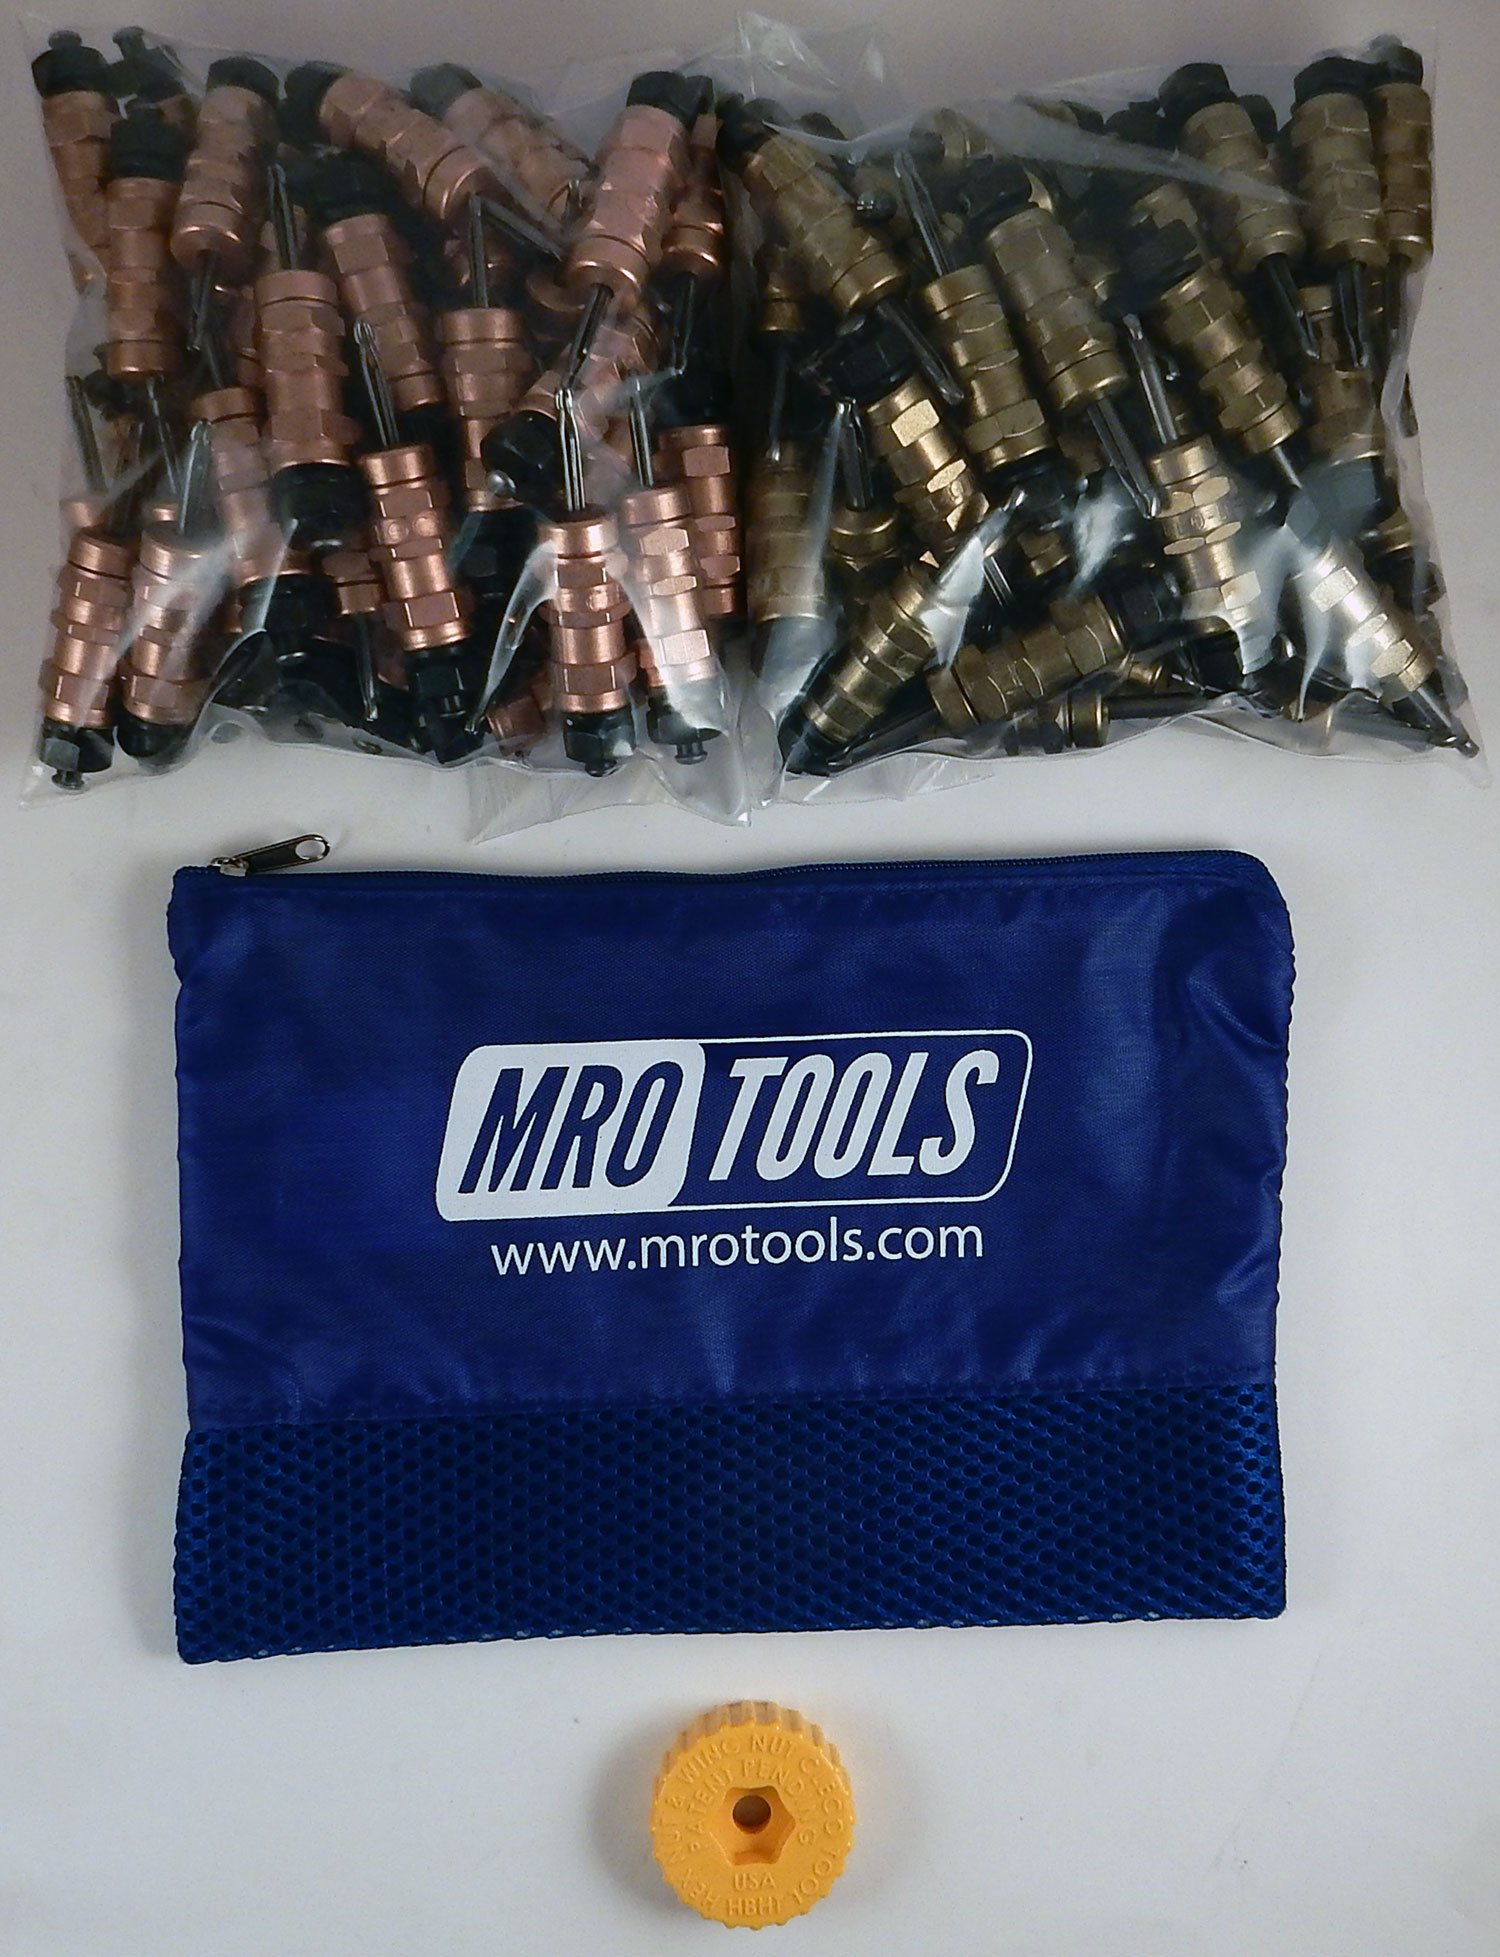 50 1/8 & 50 3/16 Standard Hex-Nut Cleco Fasteners w/ HBHT Tool & Bag (KHN4S100-1) by MRO Tools Cleco Fasteners